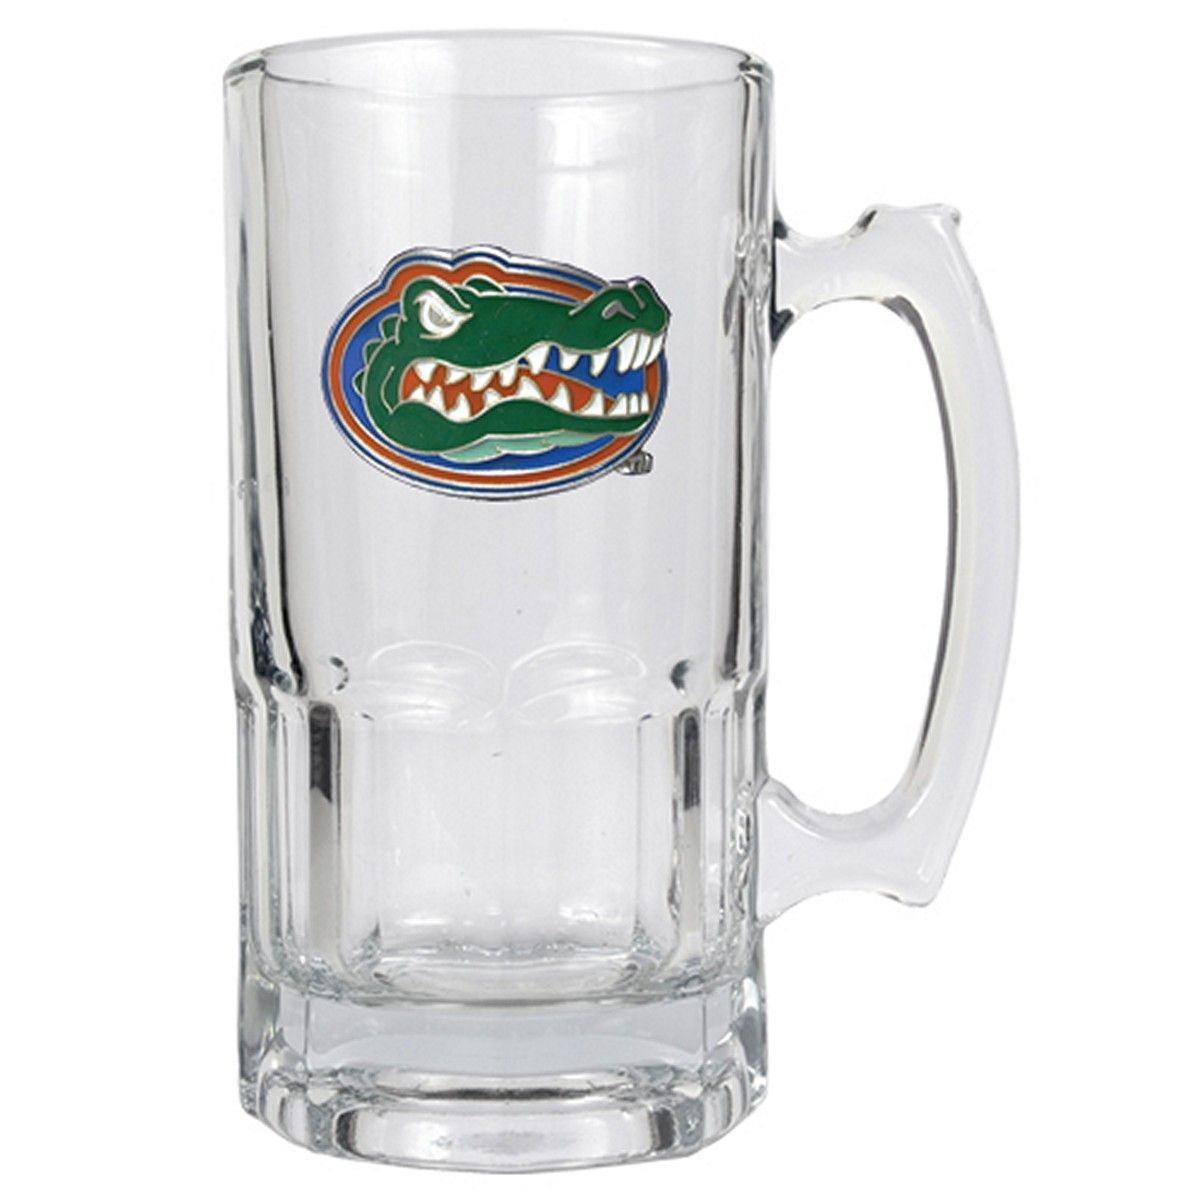 Florida Gators Large Beer Mug (Engravable)